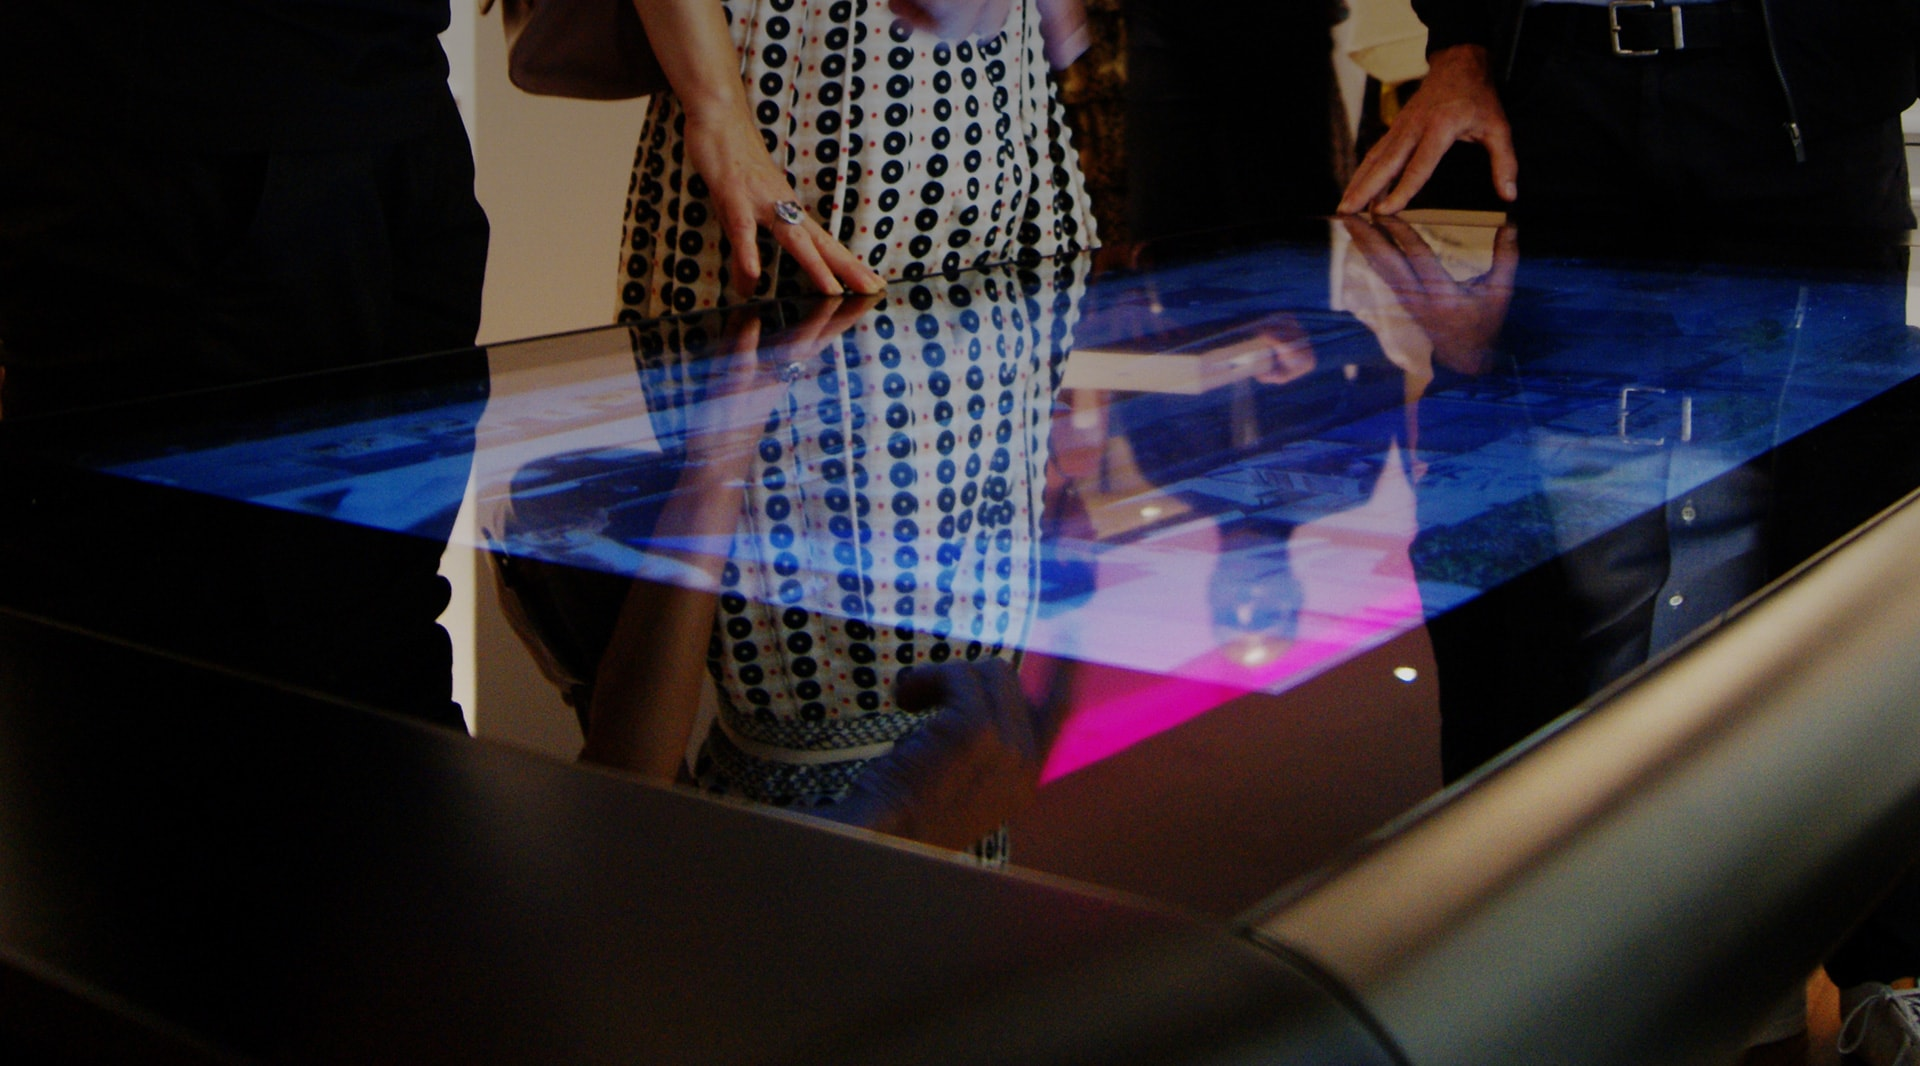 Luxury Multitouch Table